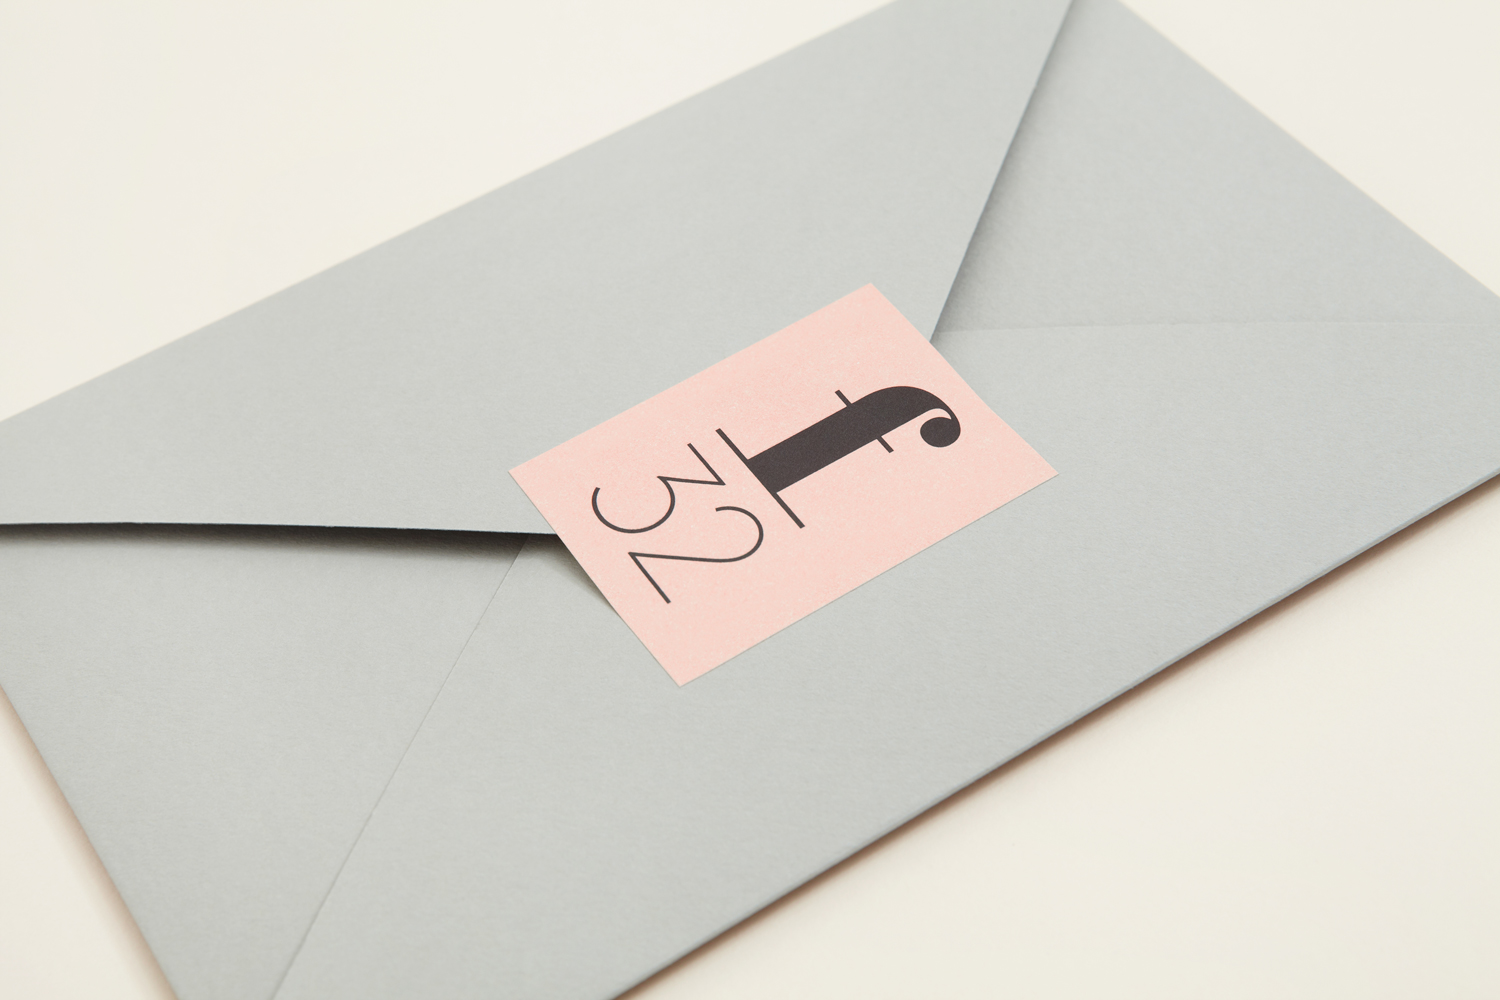 Brand identity and envelope by Blok for LA based trend-watching company f32